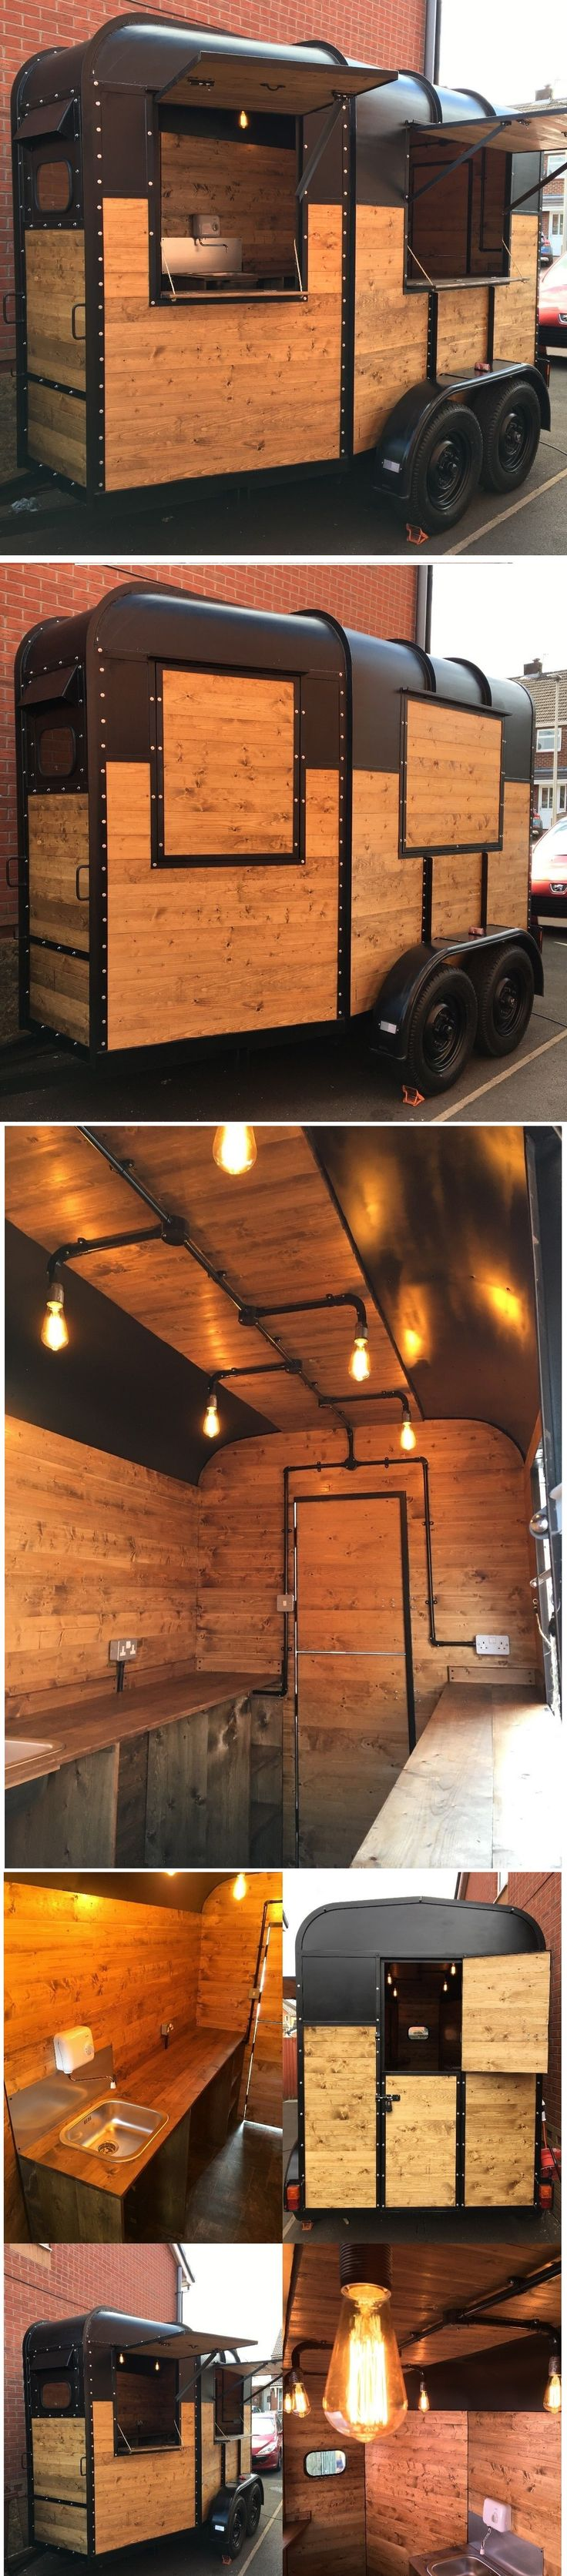 Beautiful handmade converted horsebox. http://www.ebay.co.uk/itm/Converted-Horsebox-Catering-Trailer-Mobile-Bar-Coffee-Burger-Van-Conversion-/272735106757?hash=item3f804776c5:g:cRAAAOSwjvJZUAvk #horsebox #catering #food #chic #shabbychic #business #wooden #coffee